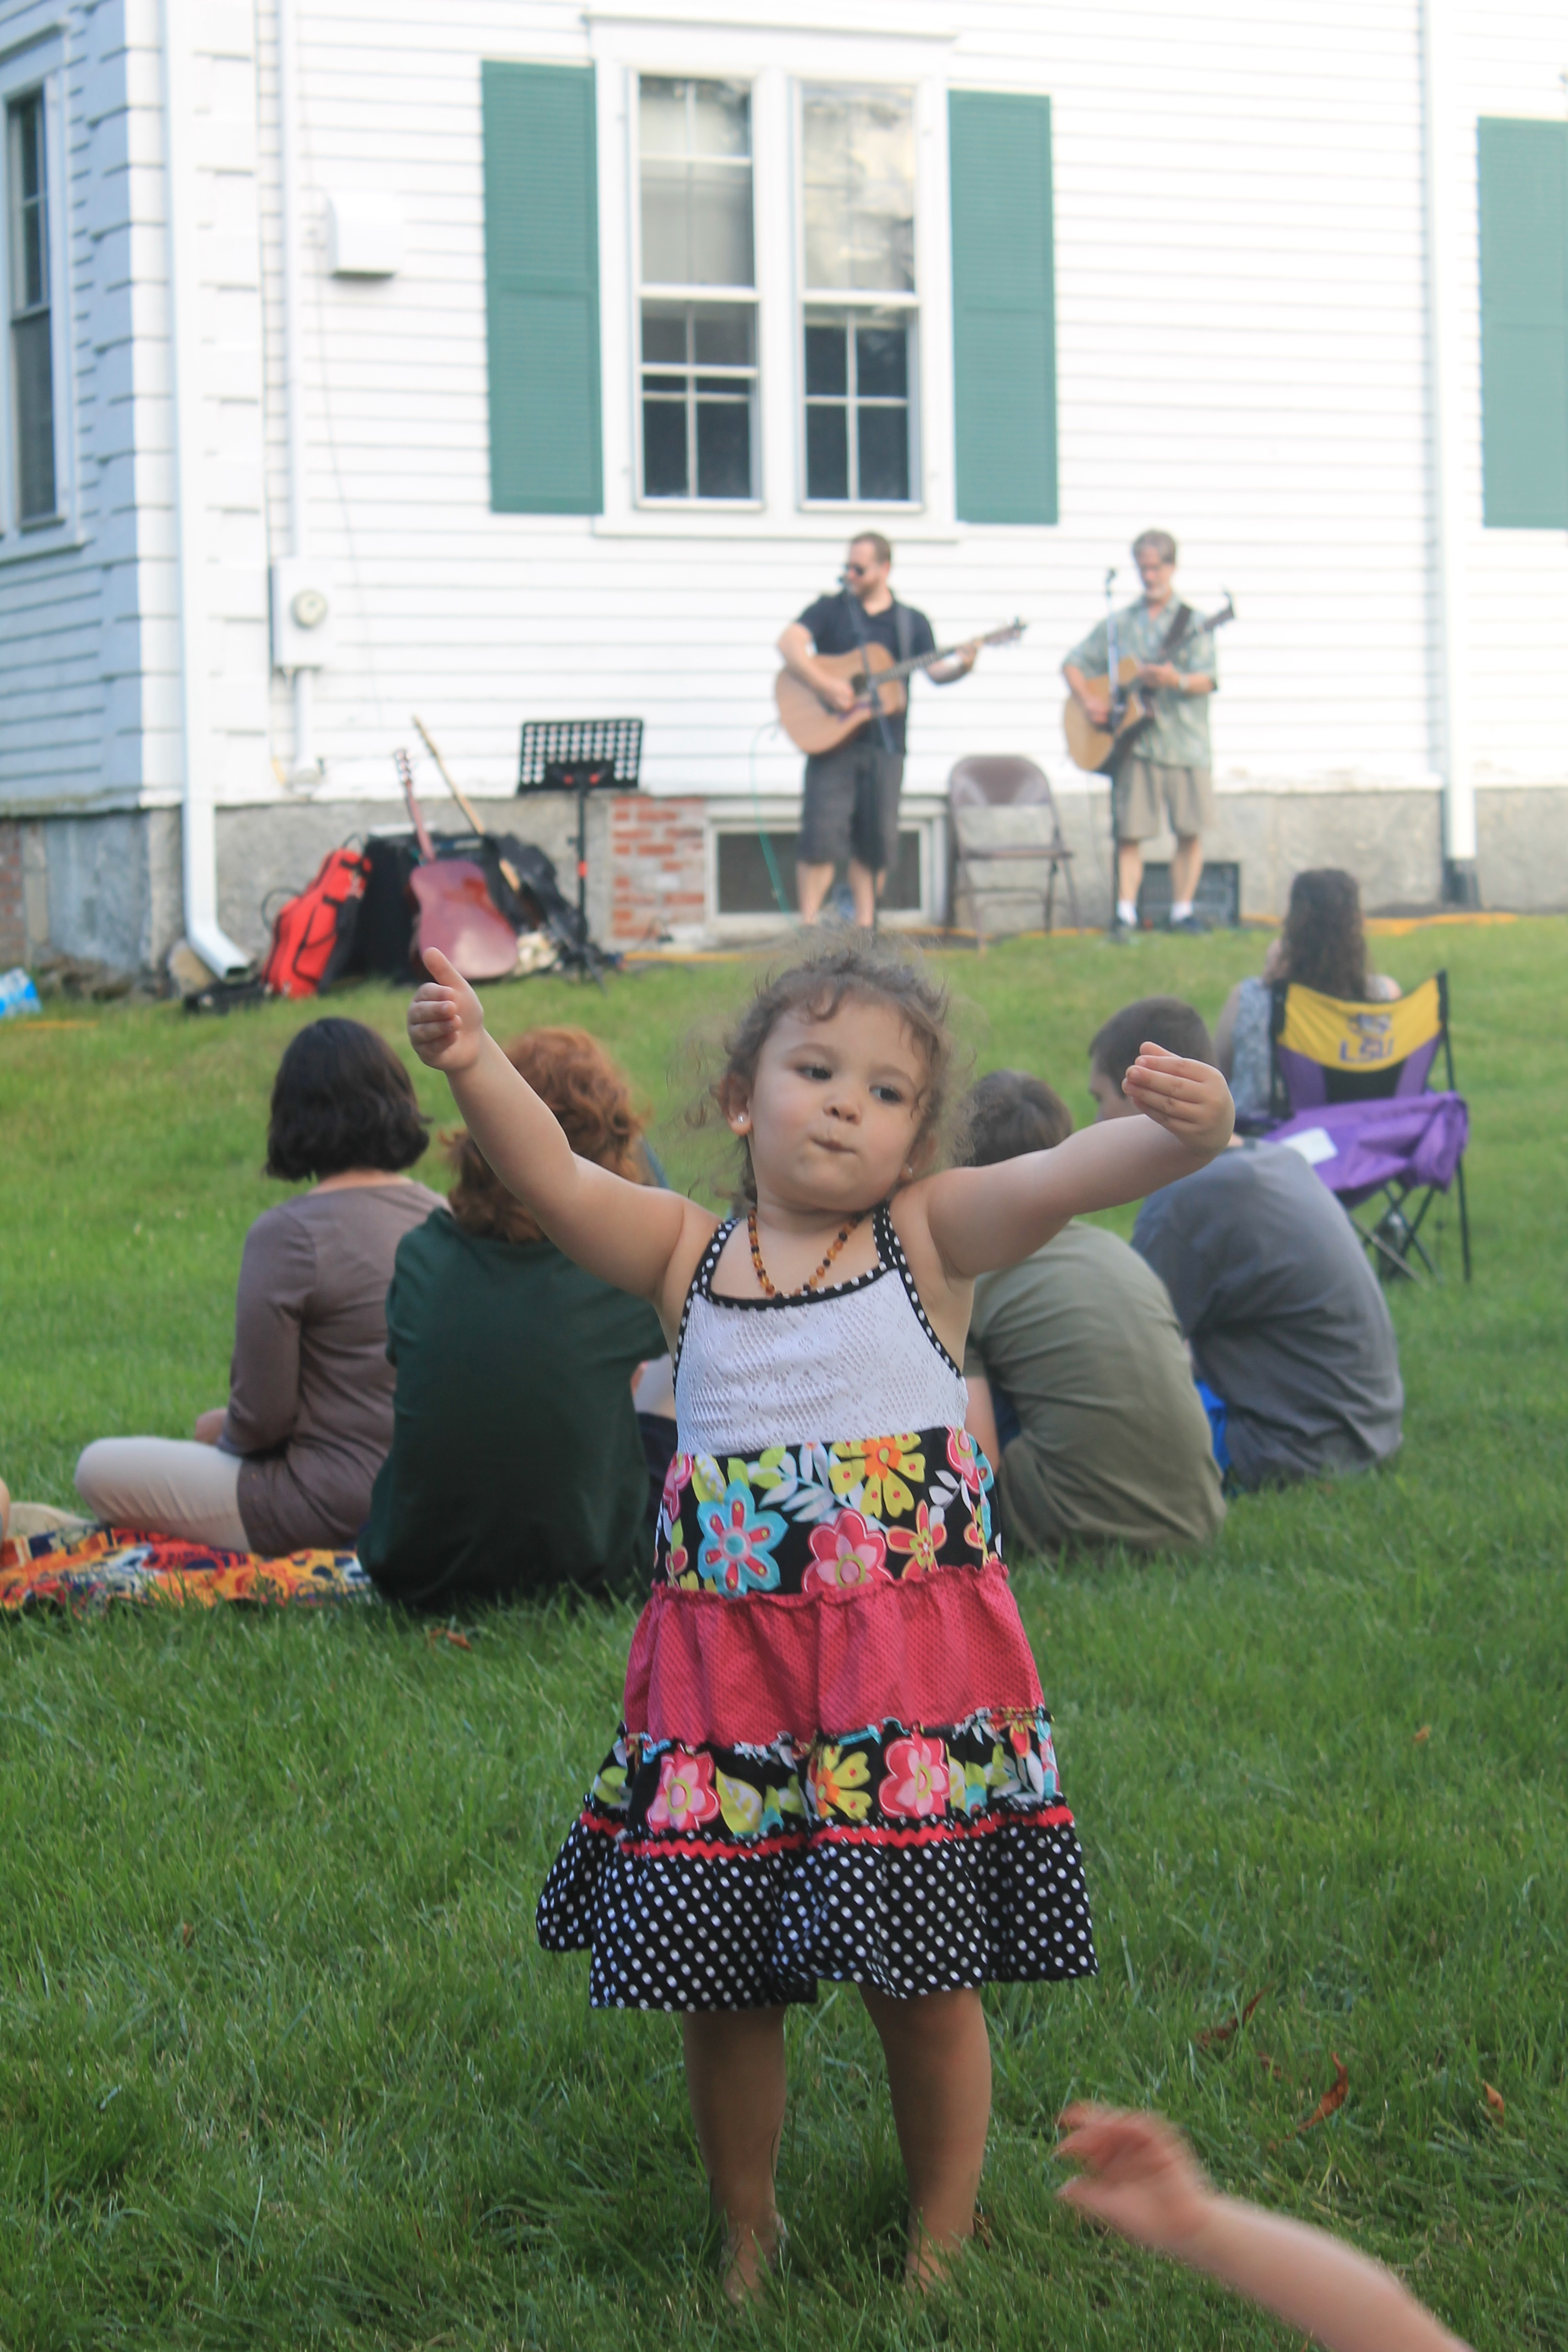 International Make Music Day comes to Brimfield on June 21